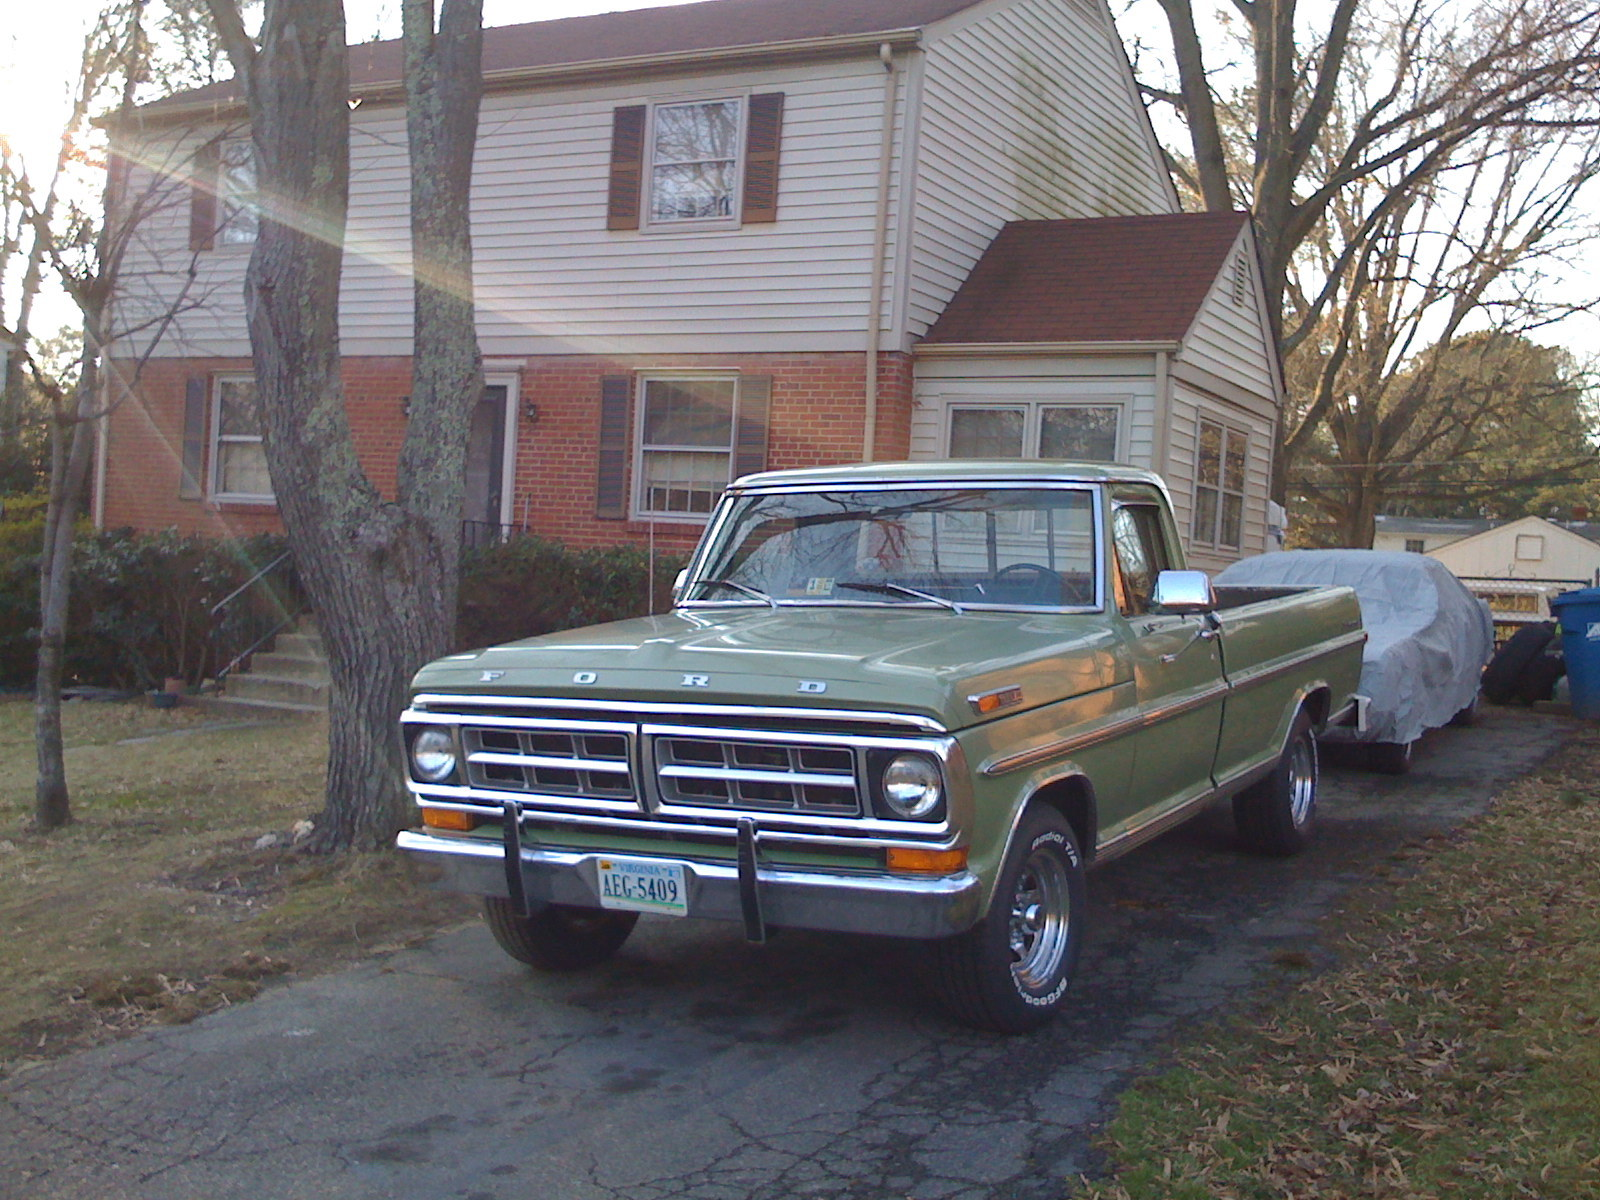 Shelby F150 For Sale >> 71VAF100 1971 Ford F150 Regular Cab Specs, Photos ...